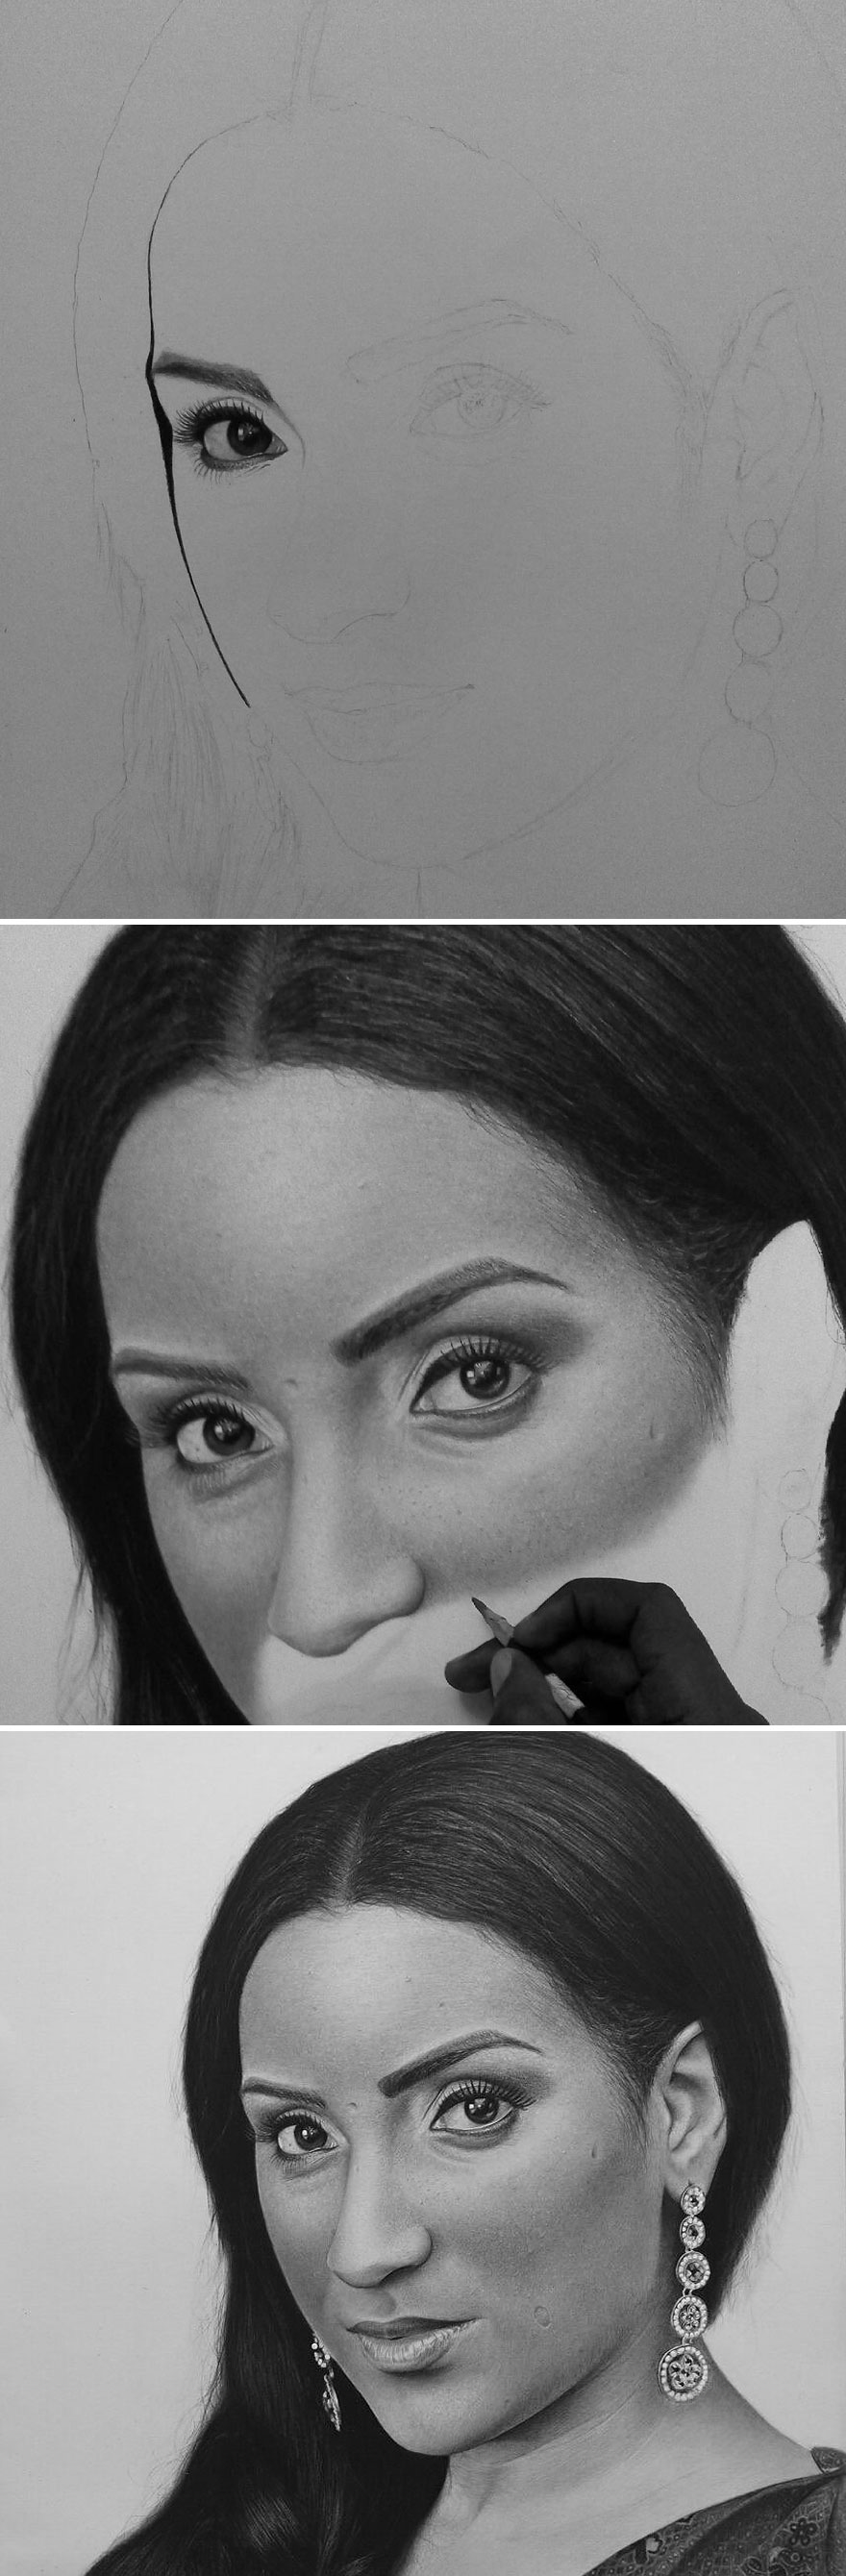 Unbelievably Realistic Pencil Portraits By Nigerian Artist (2)